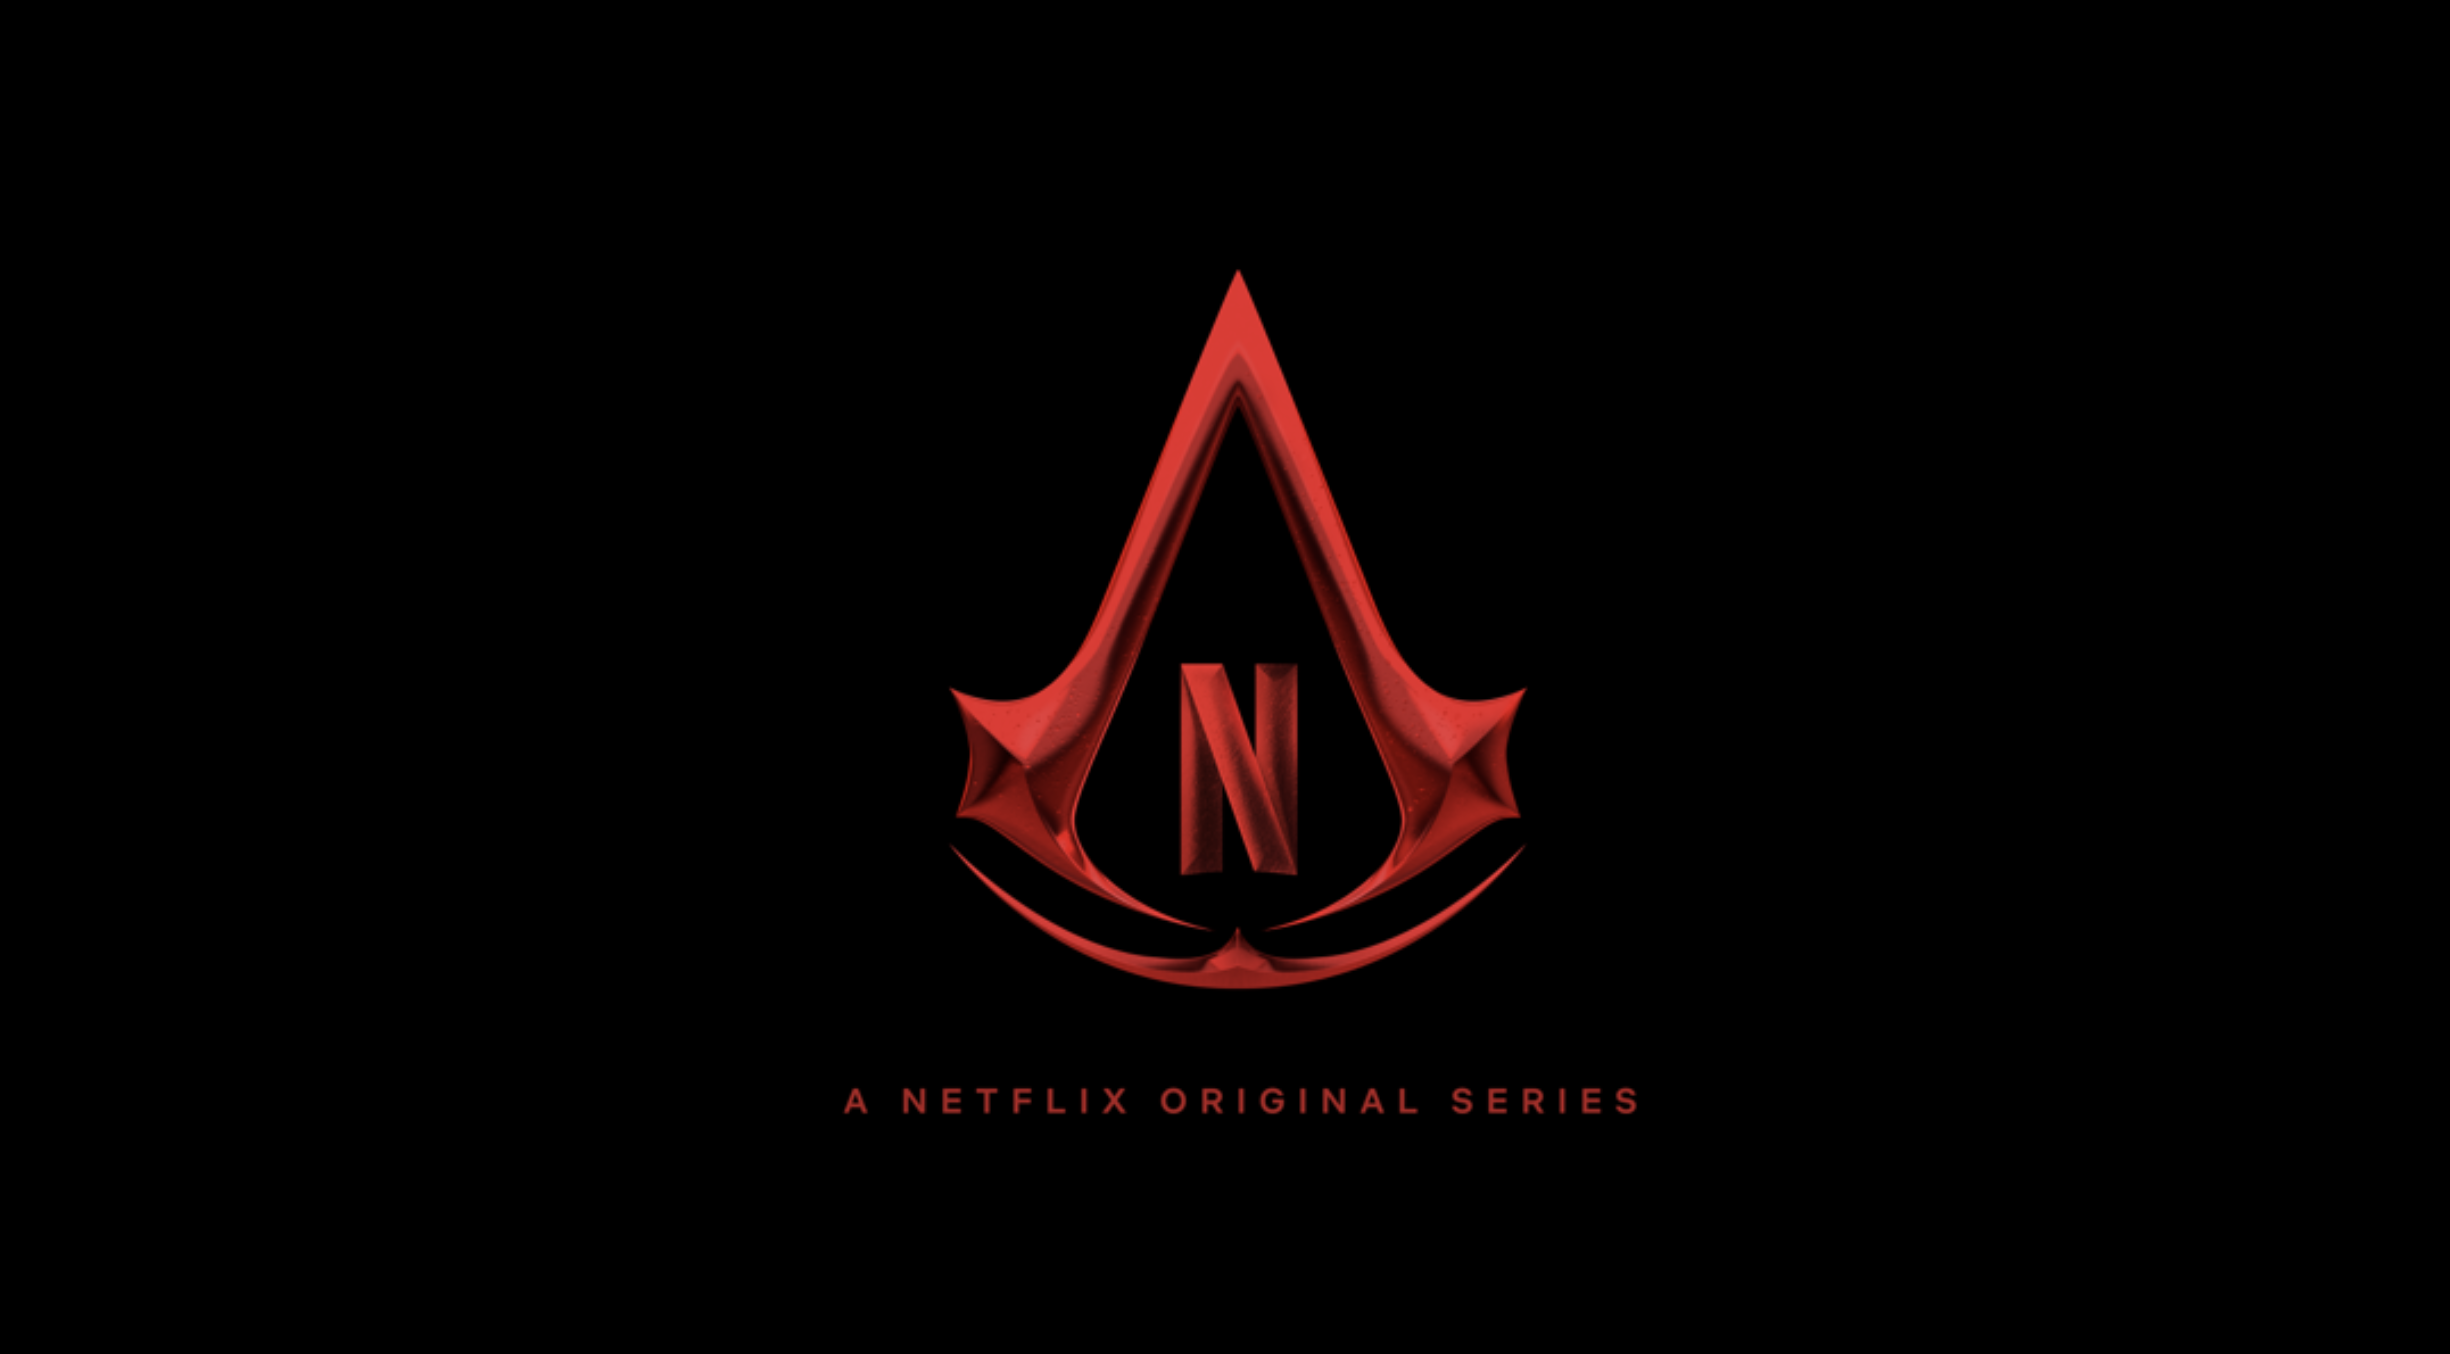 NETFLIX AND UBISOFT TEAM UP FOR LIVE ACTION SERIES ADAPTATION OF ASSASSIN'S CREED